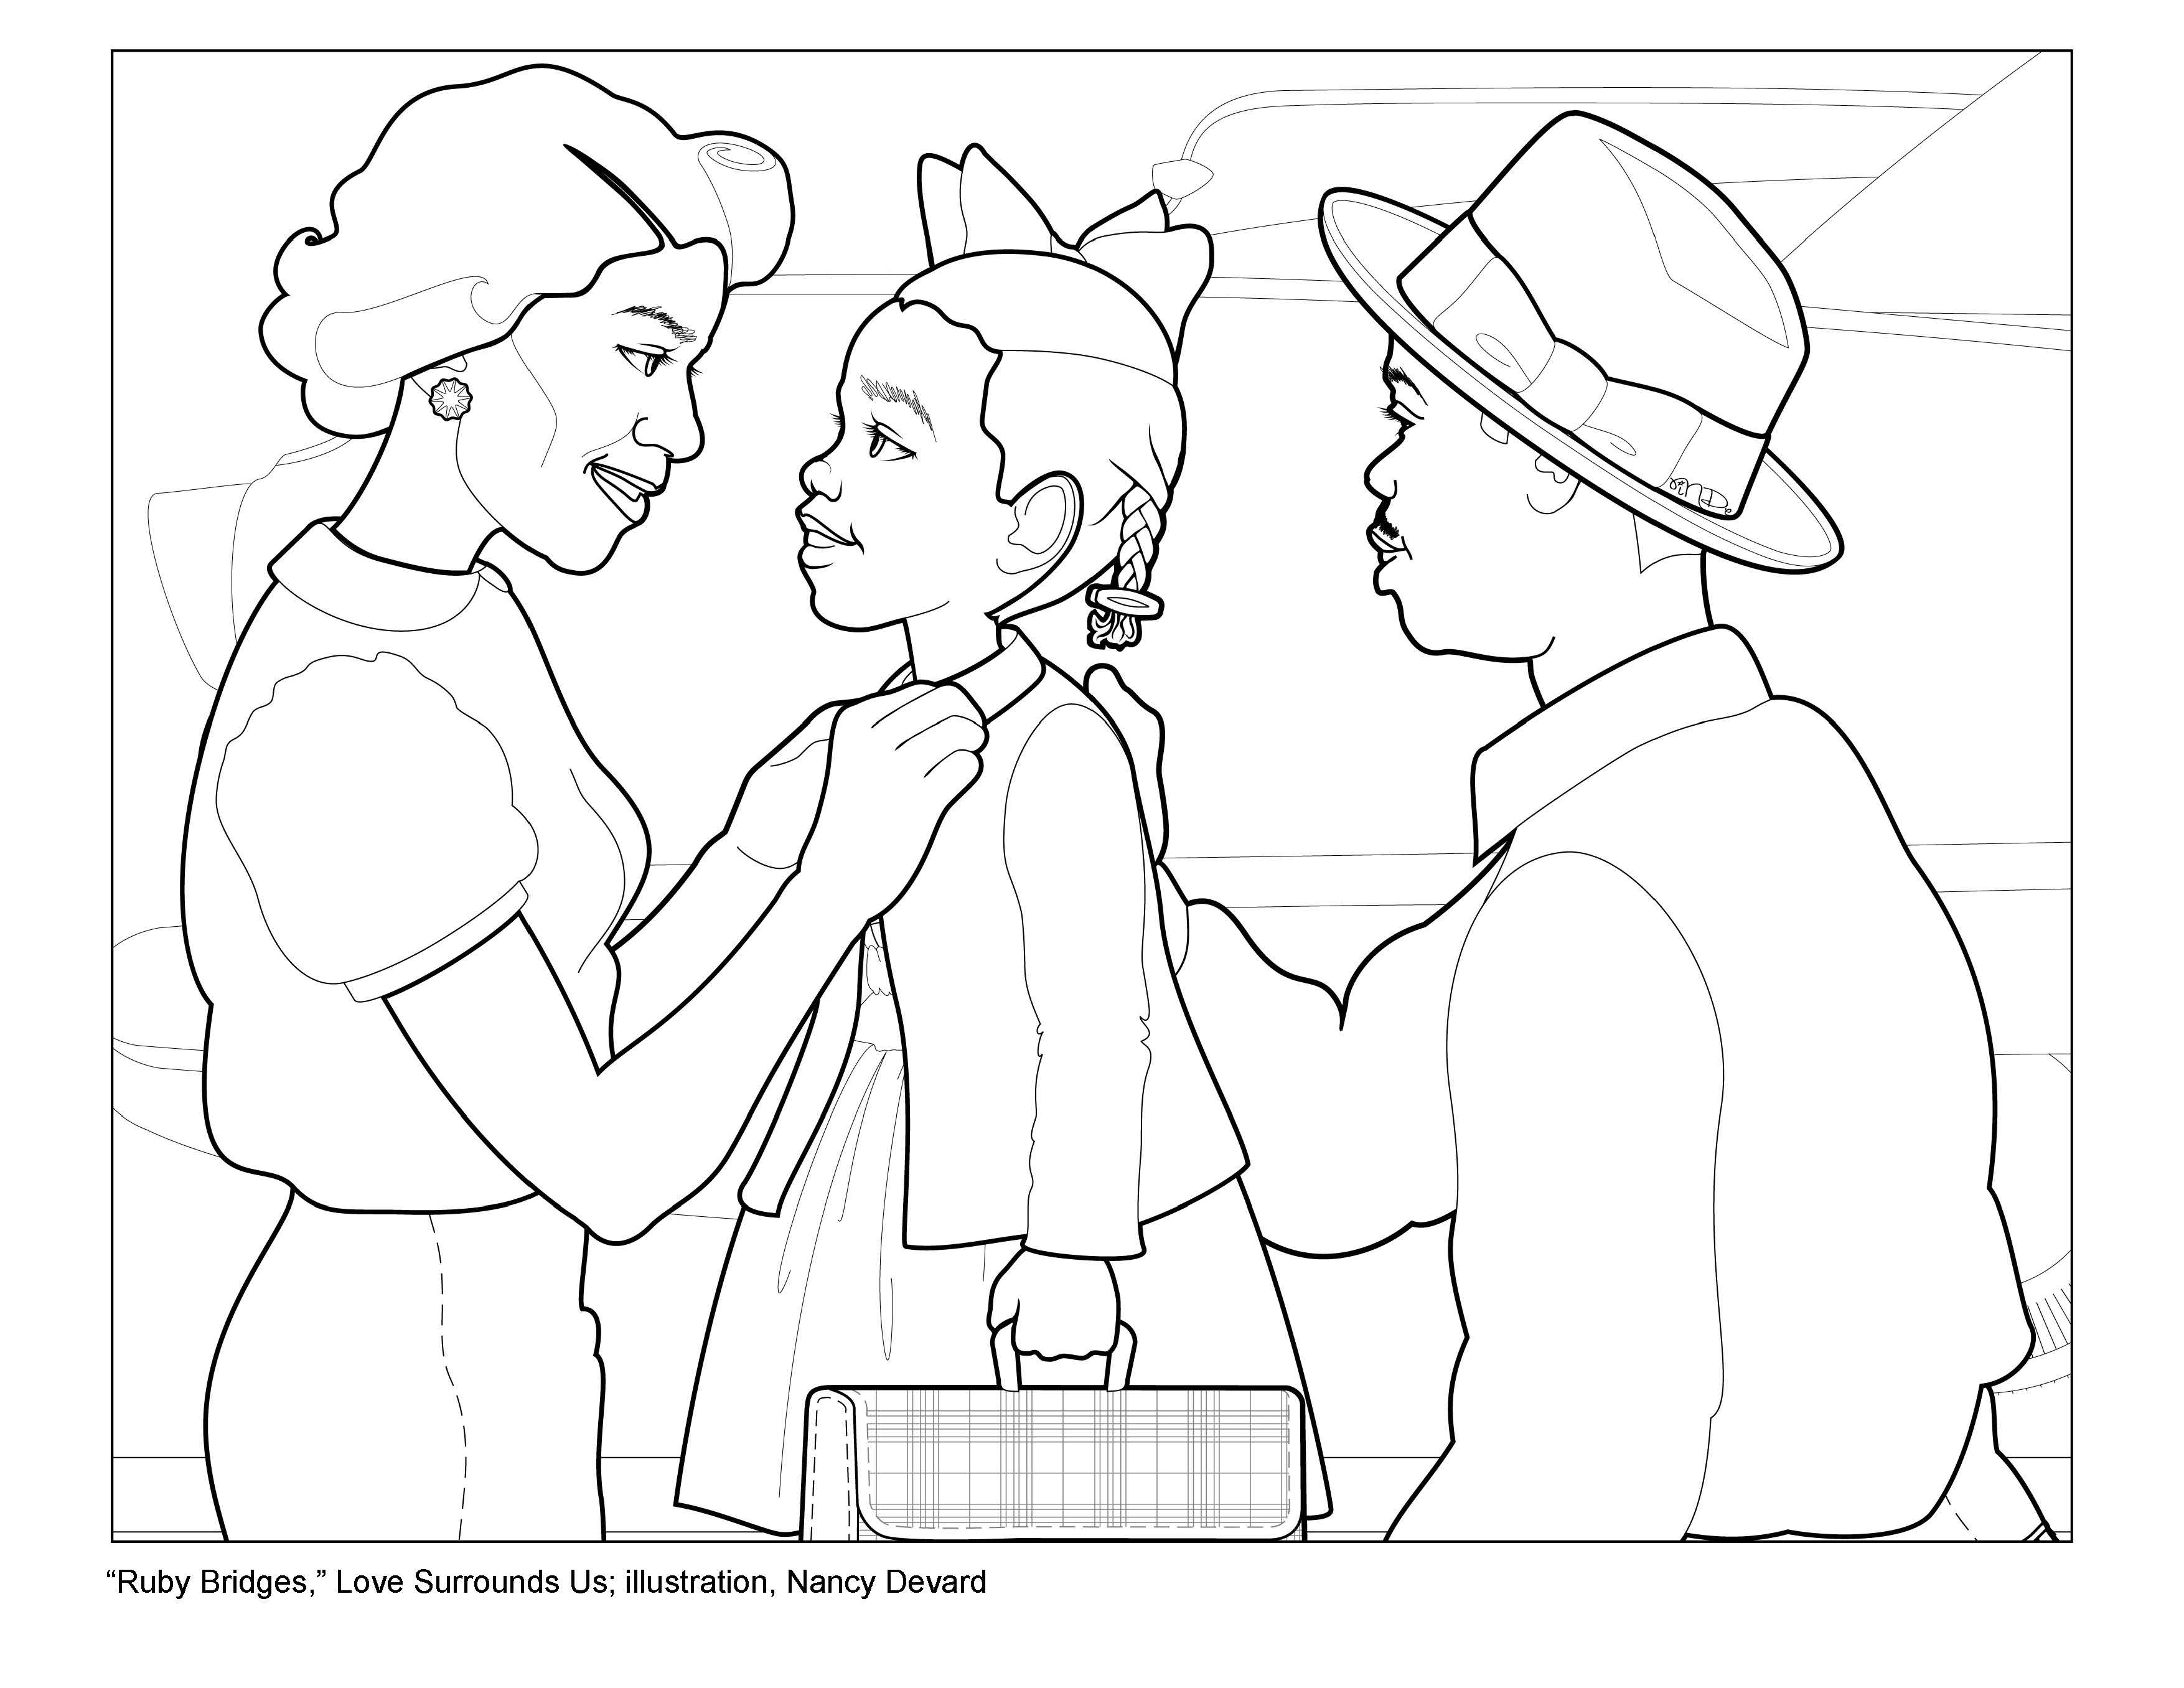 Activity 1 Story Ruby Bridges Surrounded By Love